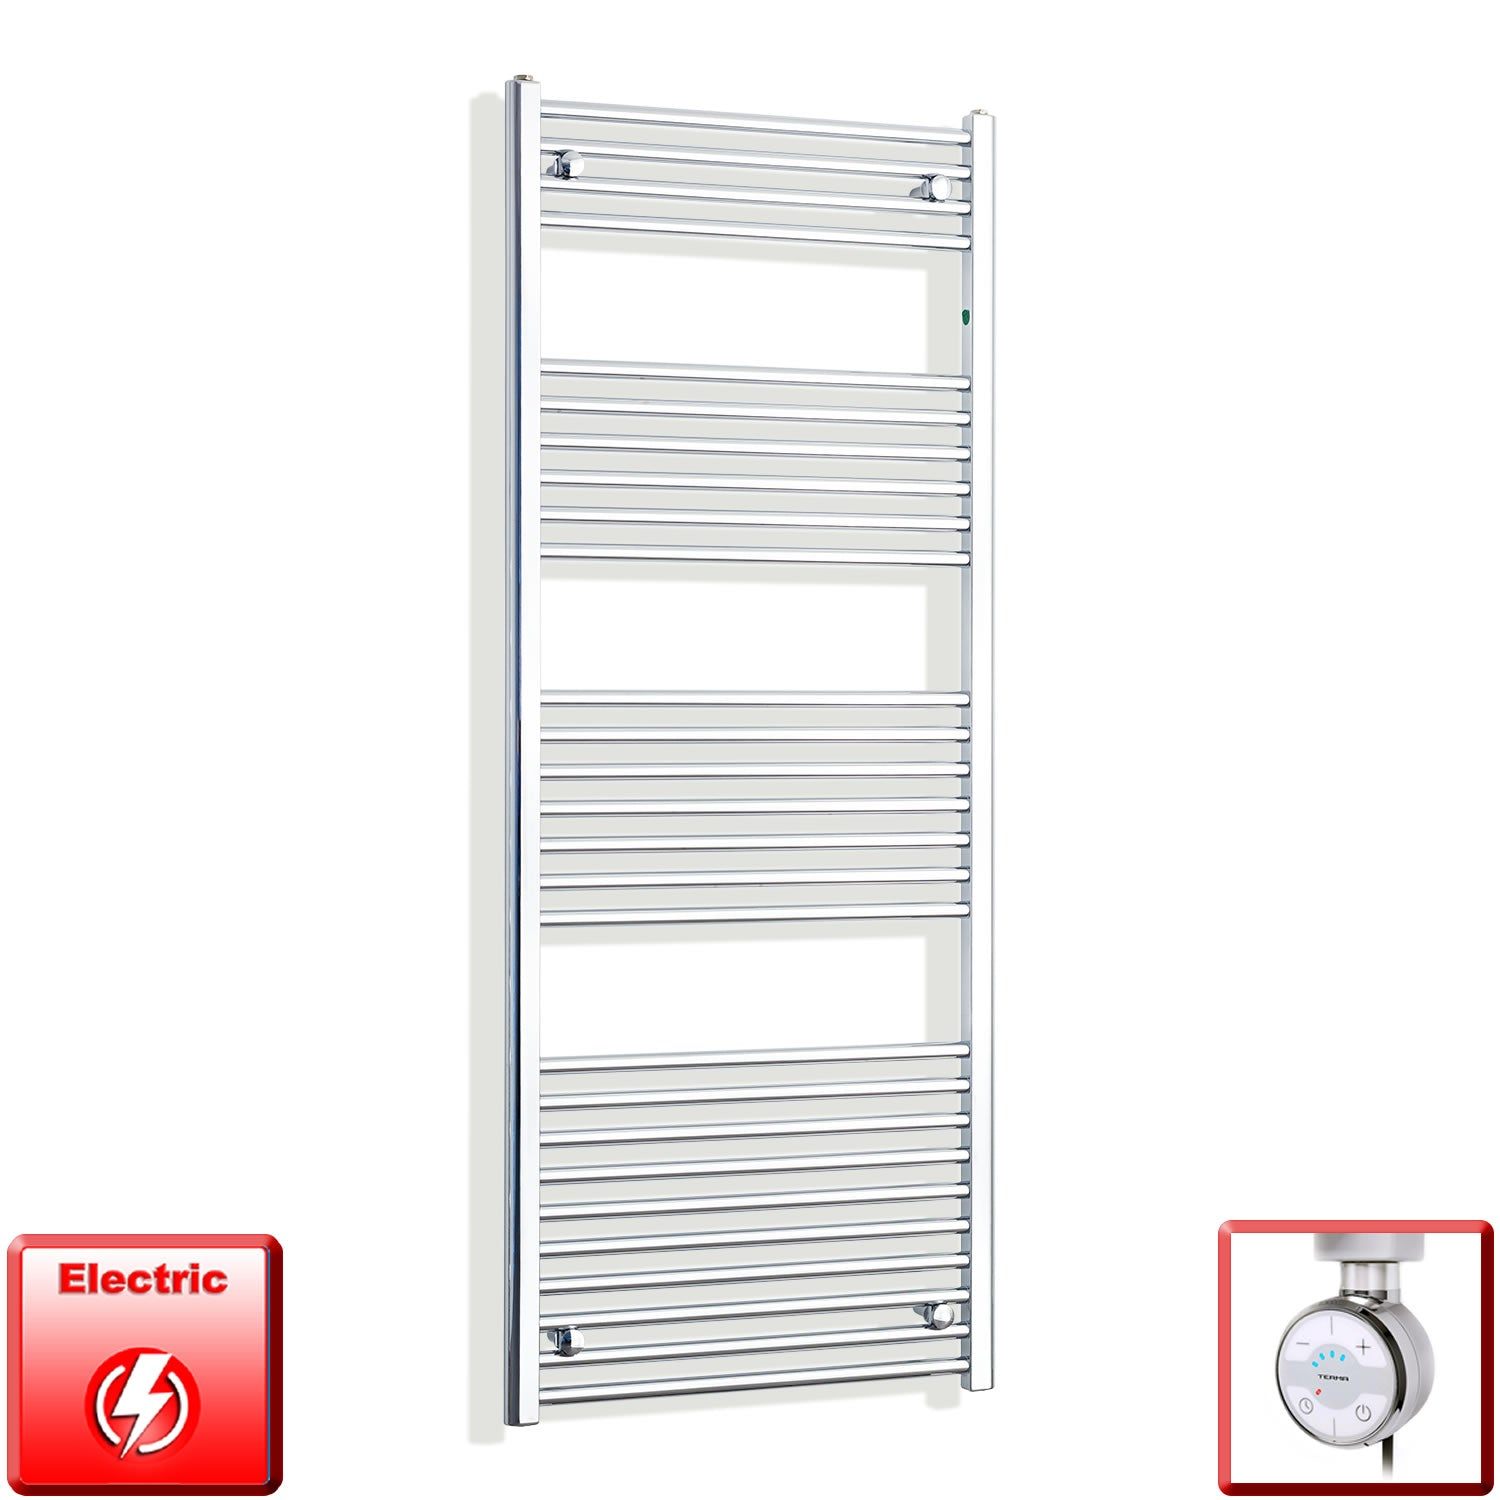 600mm Wide 1600mm High Pre-Filled Chrome Electric Towel Rail Radiator With Thermostatic MOA Element